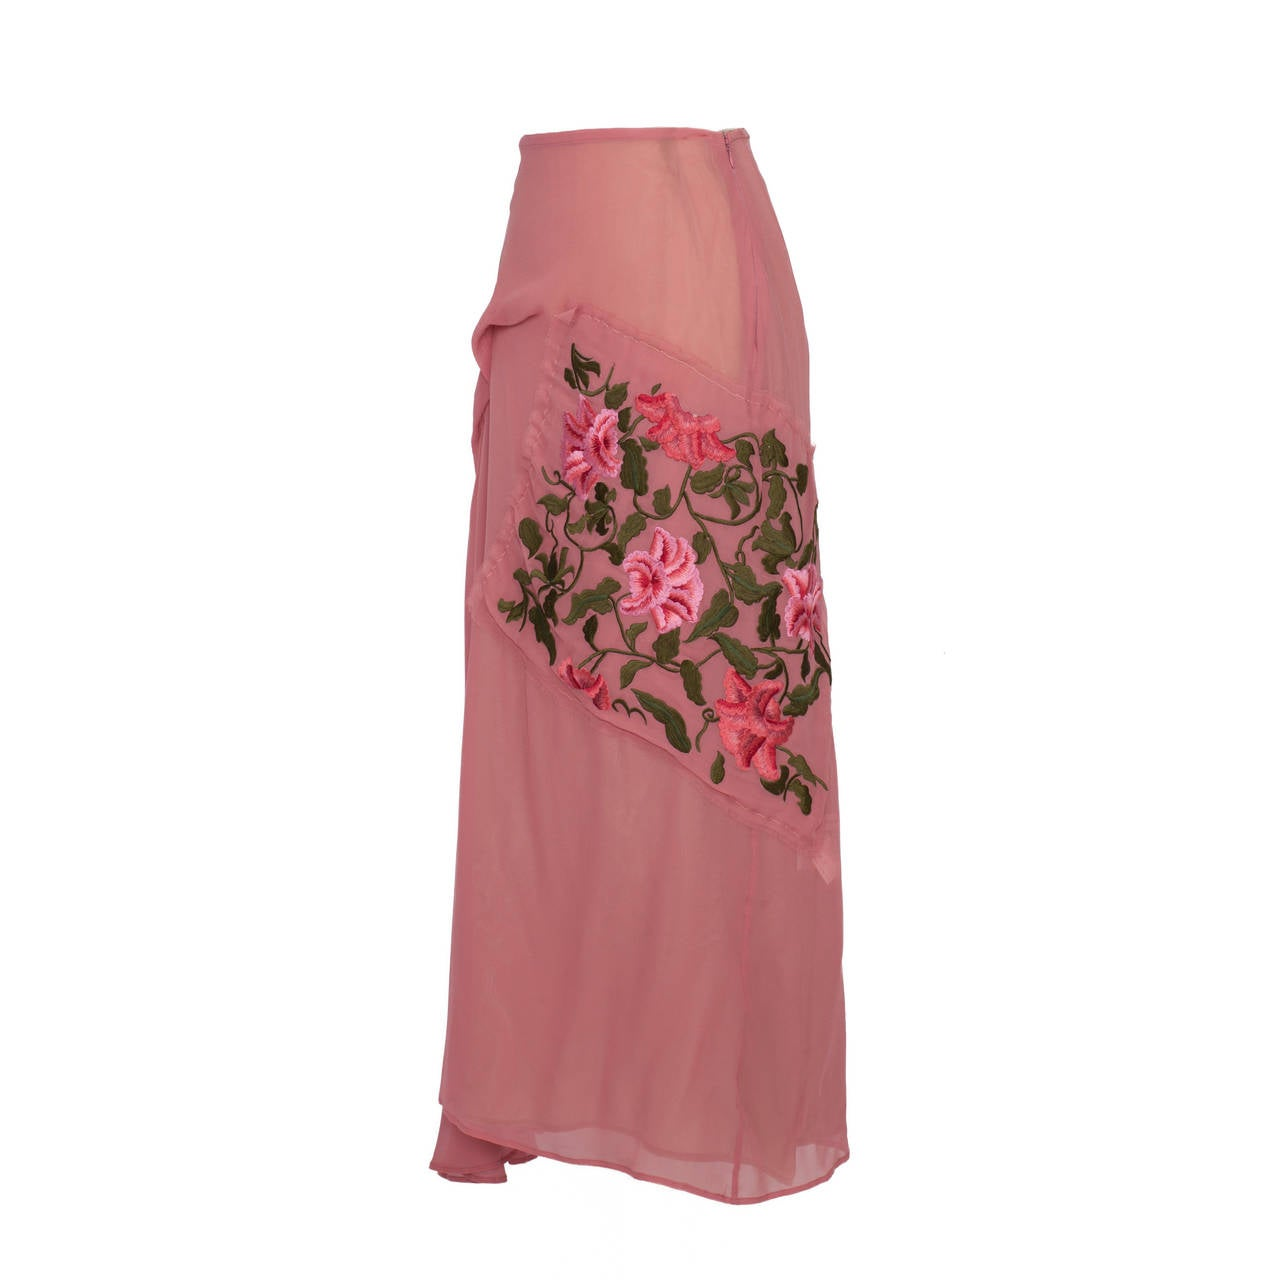 Yohji Yamamoto pink / beige silk double layered skirt.  Draping front detail with amazing embroidered flower square patch.